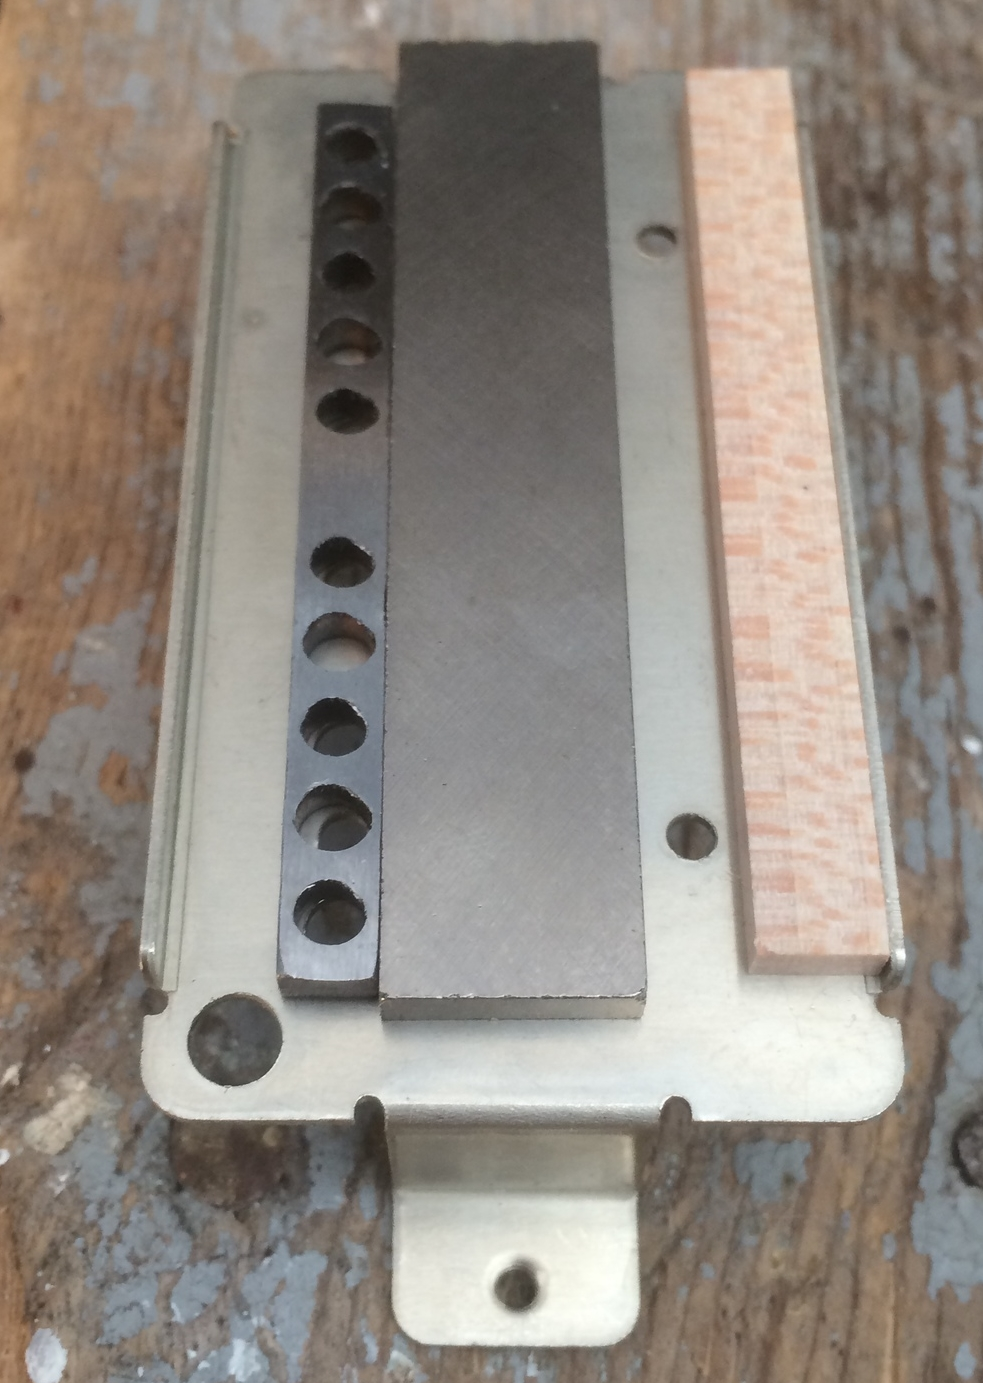 Here's the spacer, magnet and keeper laid out on the baseplate. You can see how the pole screws pass through the keeper. The space beside the magnet on the right is for the slugs and the maple spacer supports the bobbin. Notice on the far left there is a space for the braided shield conductor.